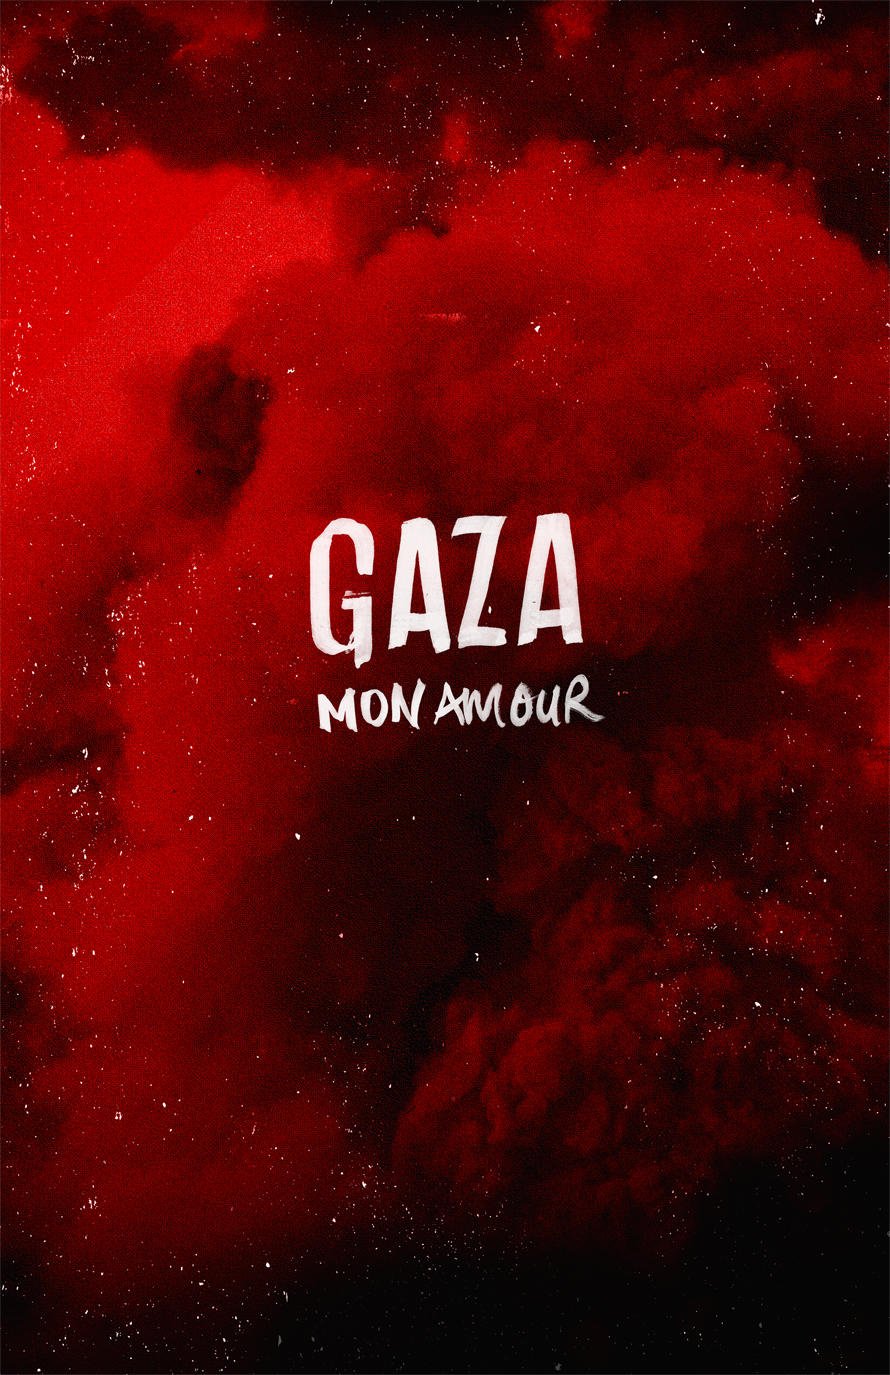 gaza_poster_red